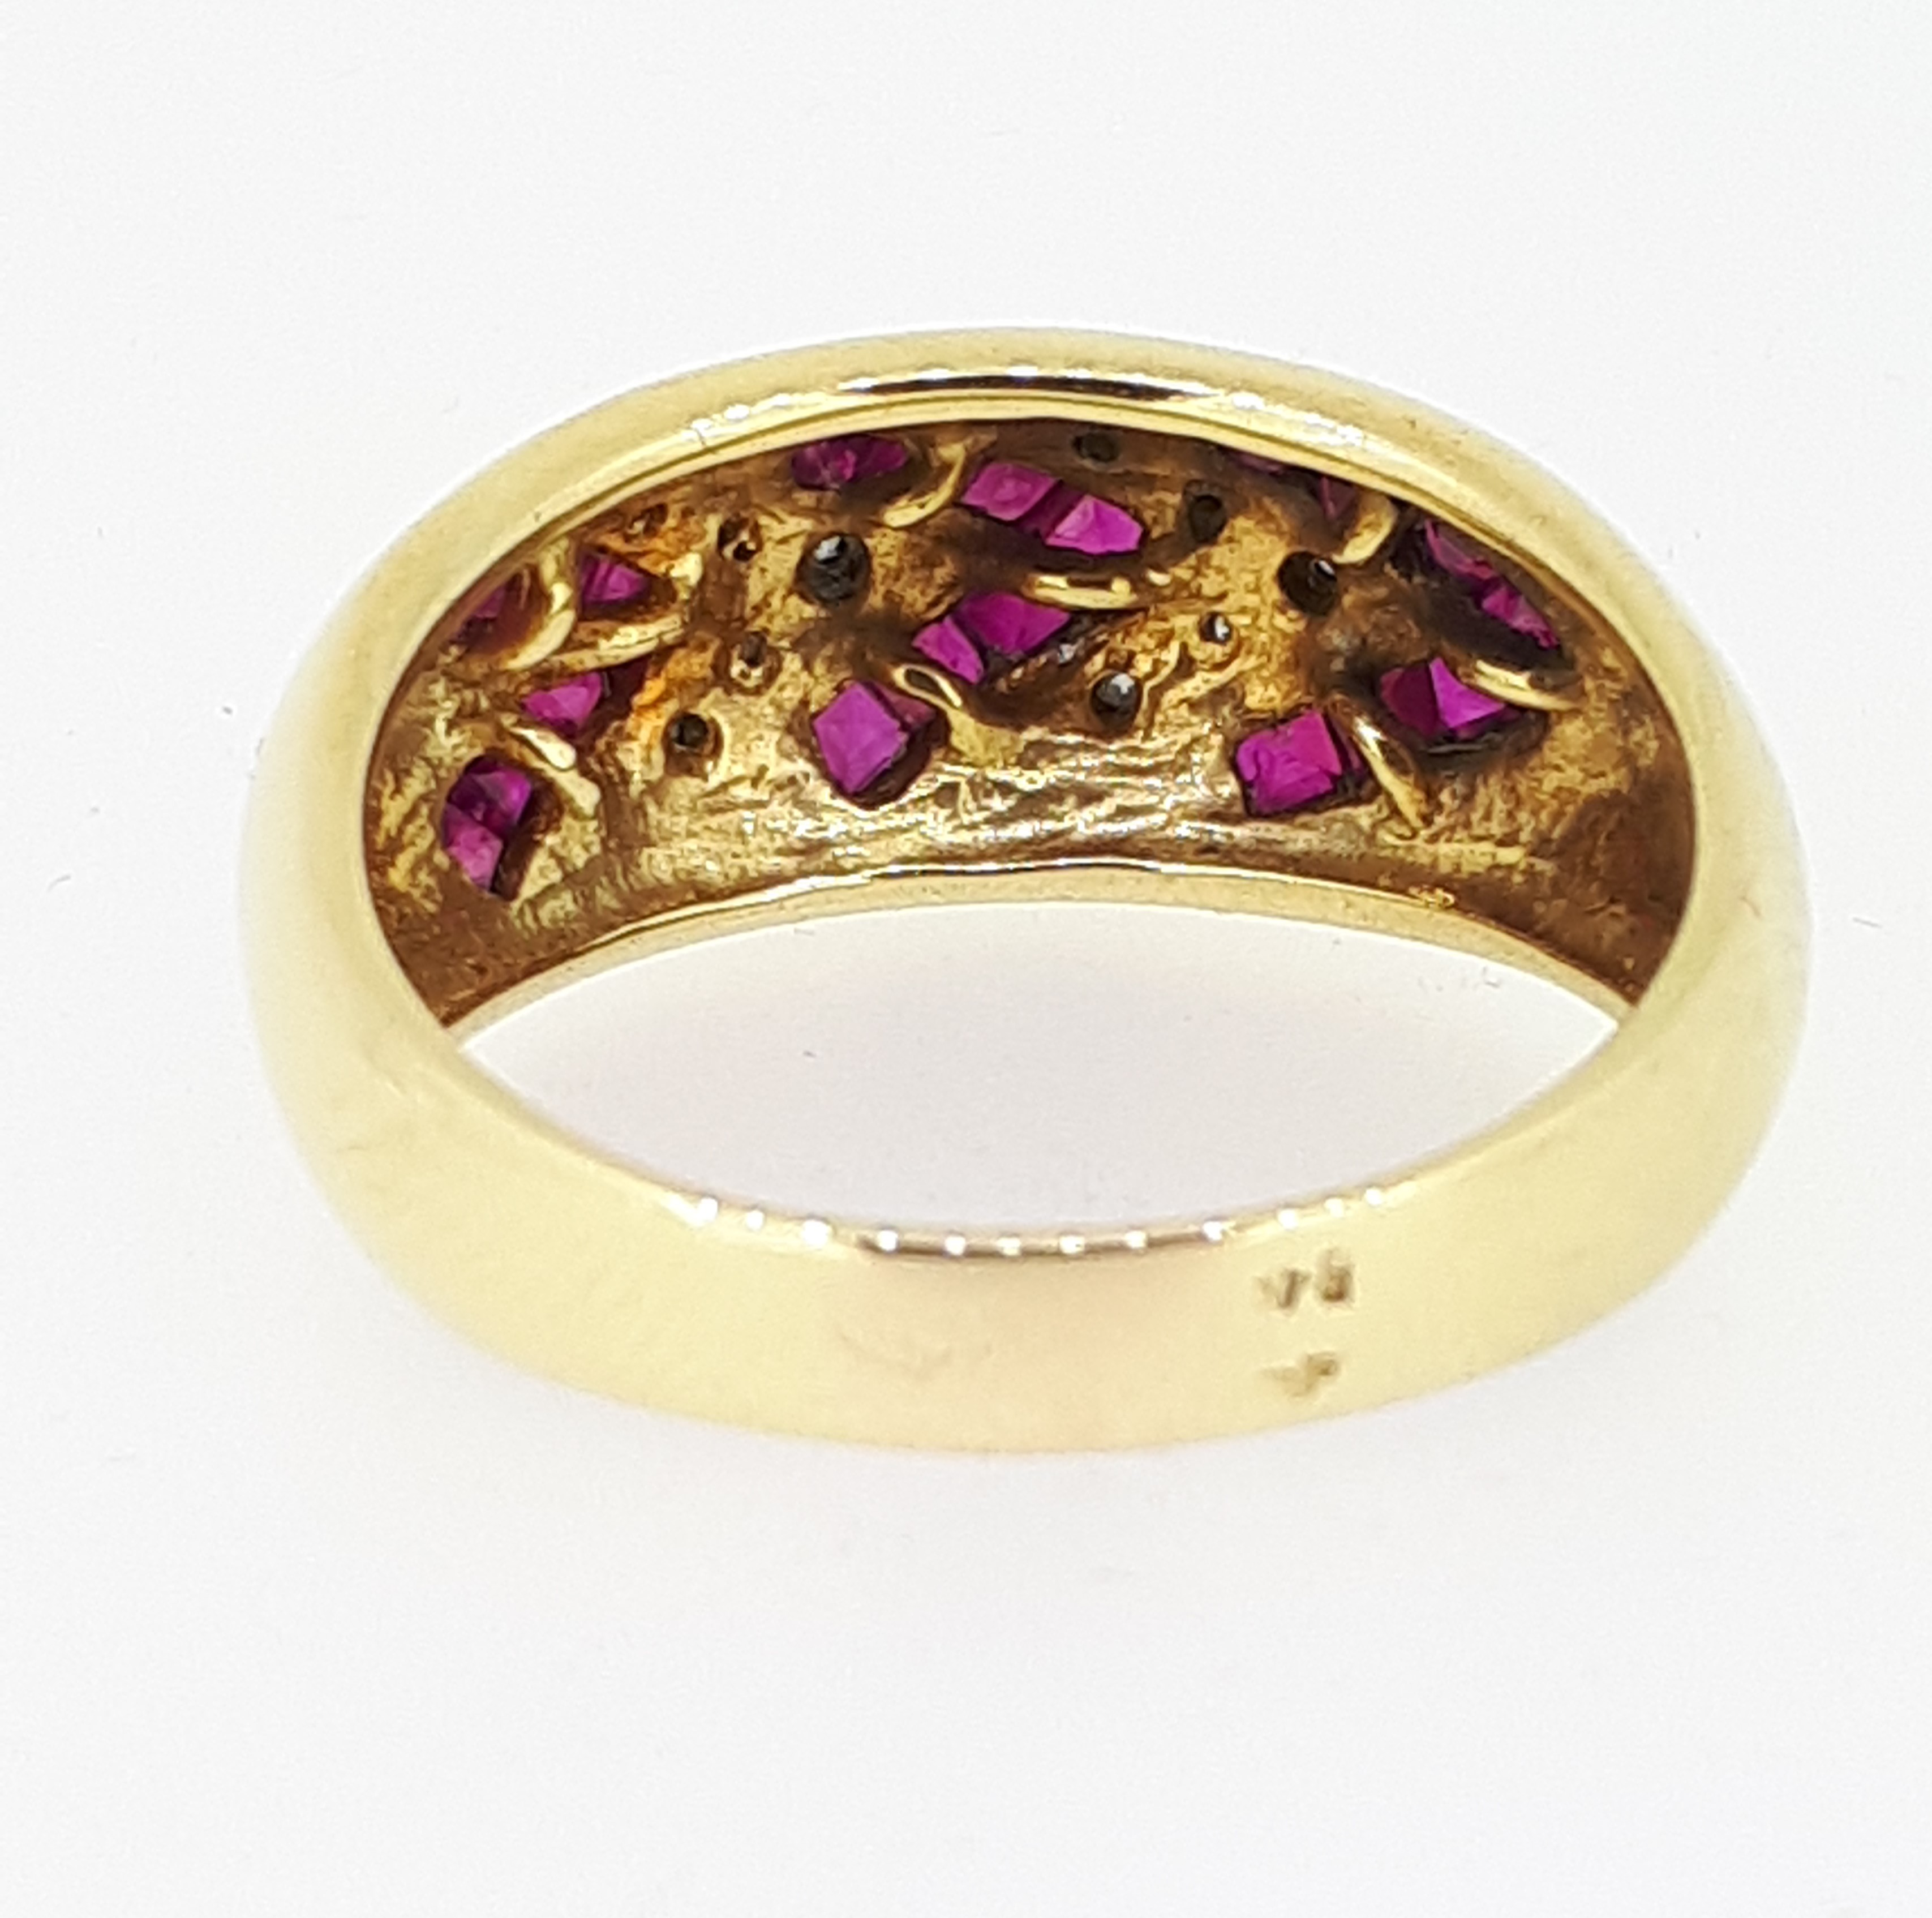 18ct (750) yellow Gold Ruby & Diamond Heavy Ring - Image 5 of 5